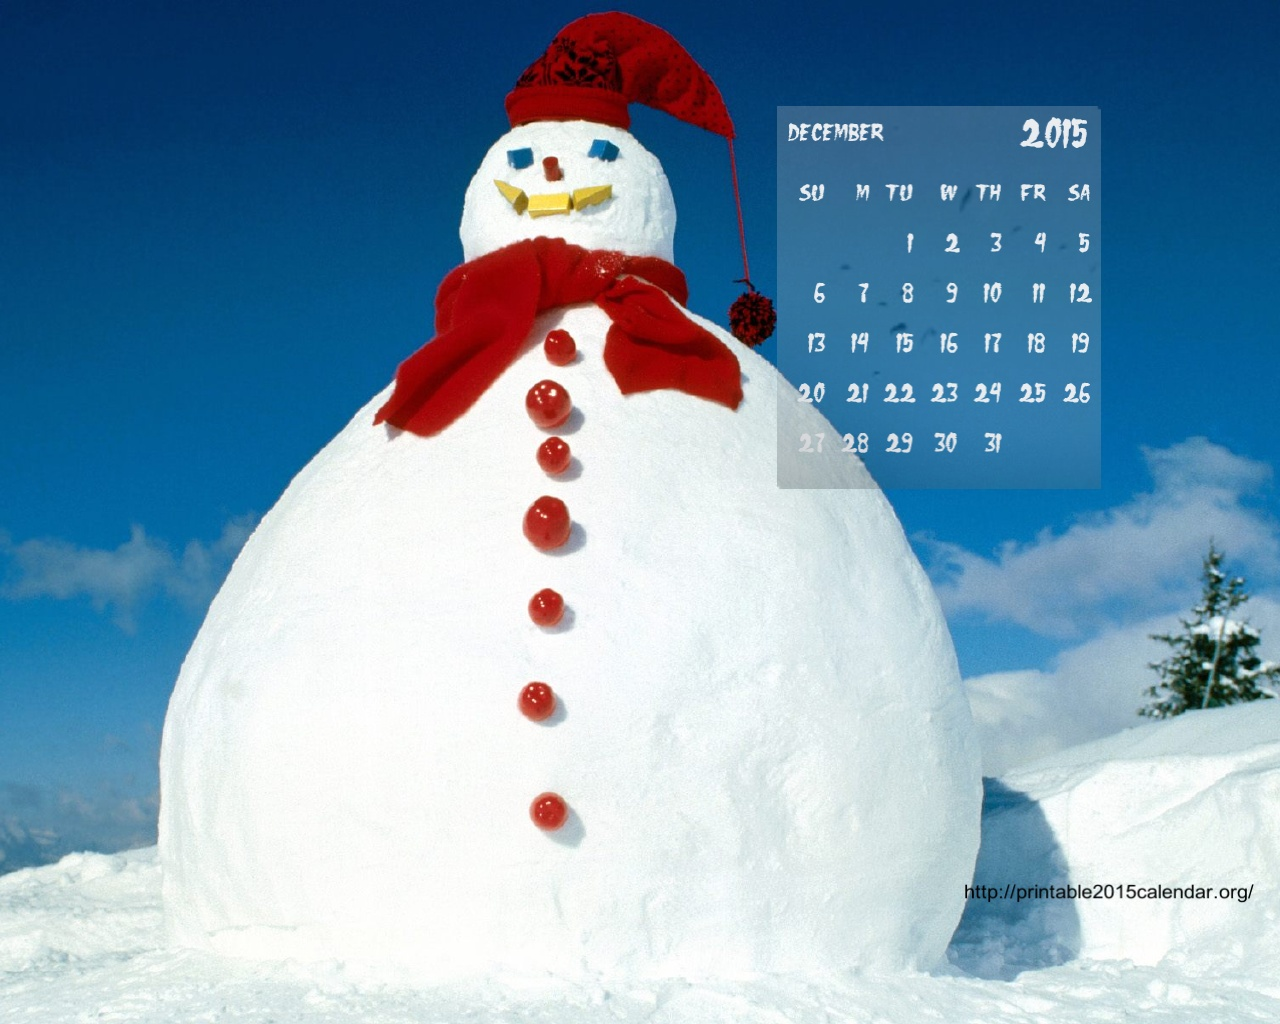 May 2015 Calendar Wallpaper 2015 Calendar 1280x1024